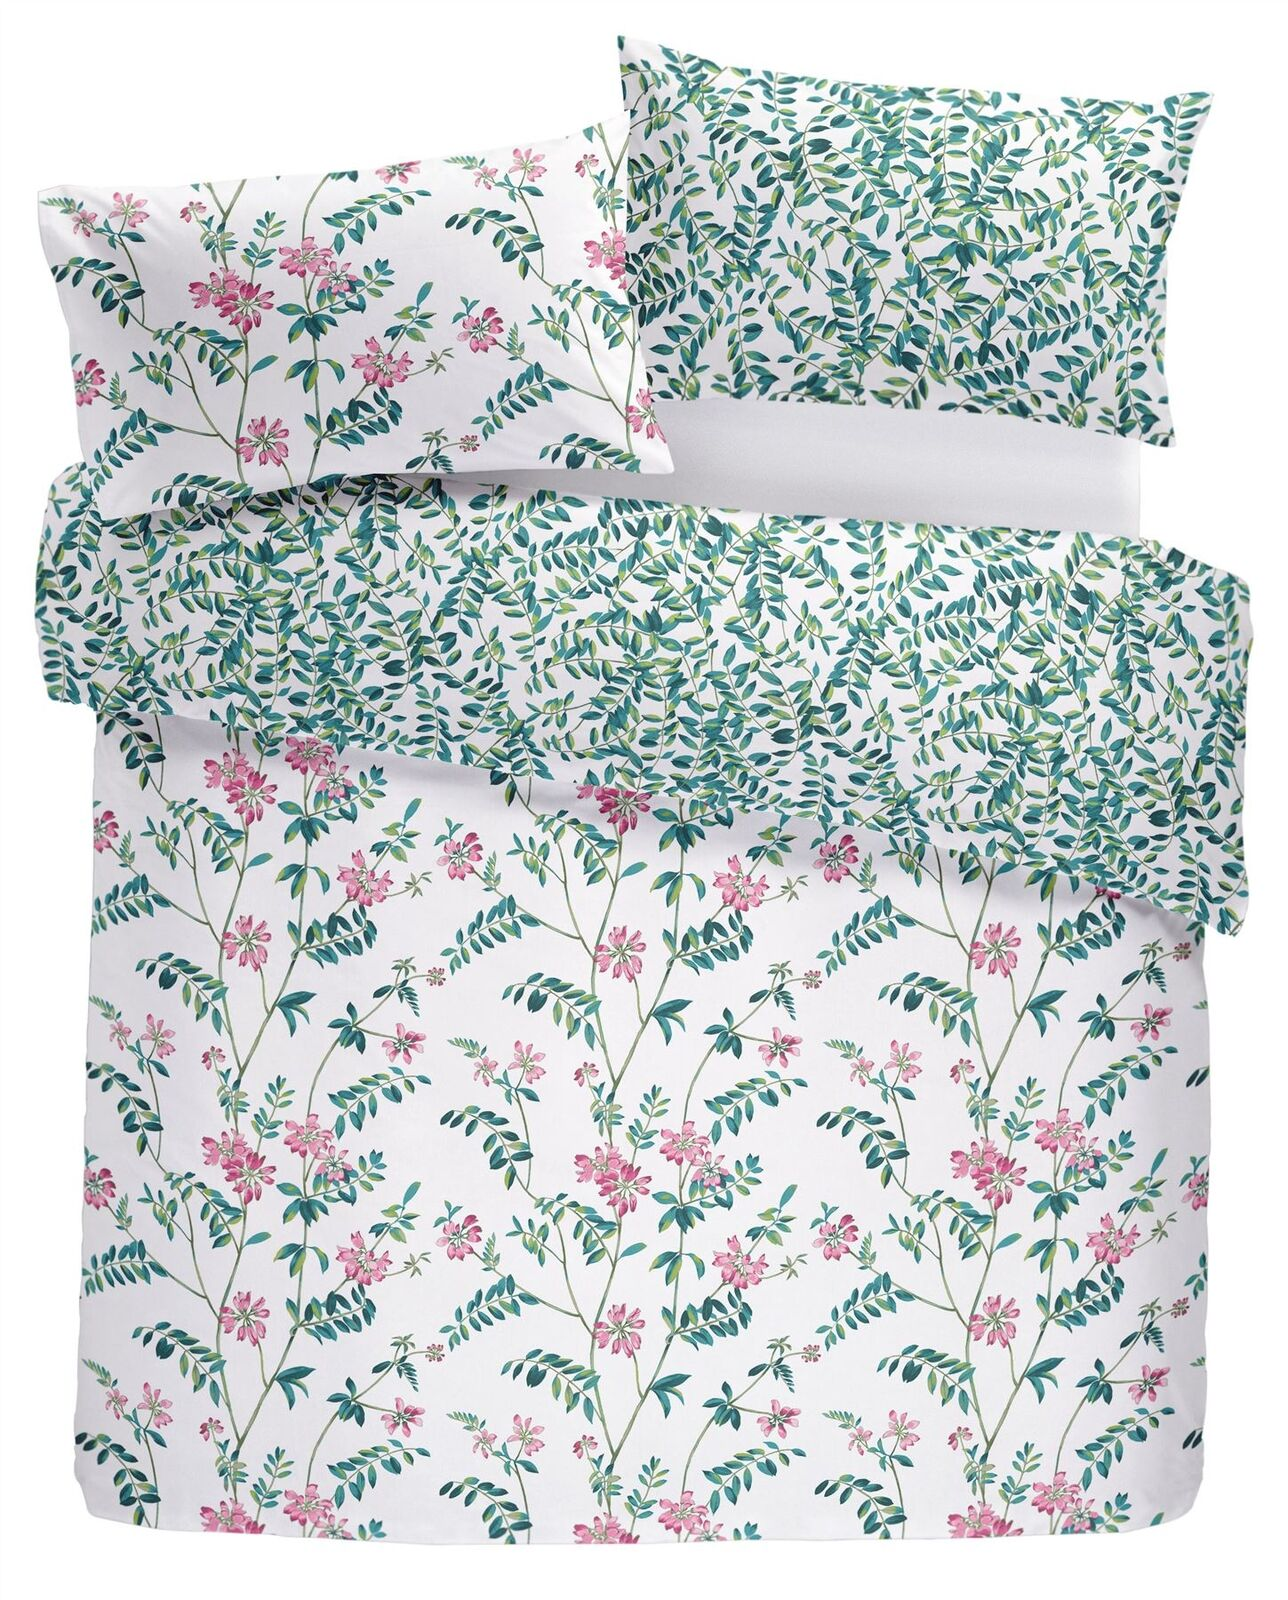 HAND-DRAWN STYLE FLORAL FLOWERS LEAVES TEAL SUPER KING 4 PIECE BEDDING SET